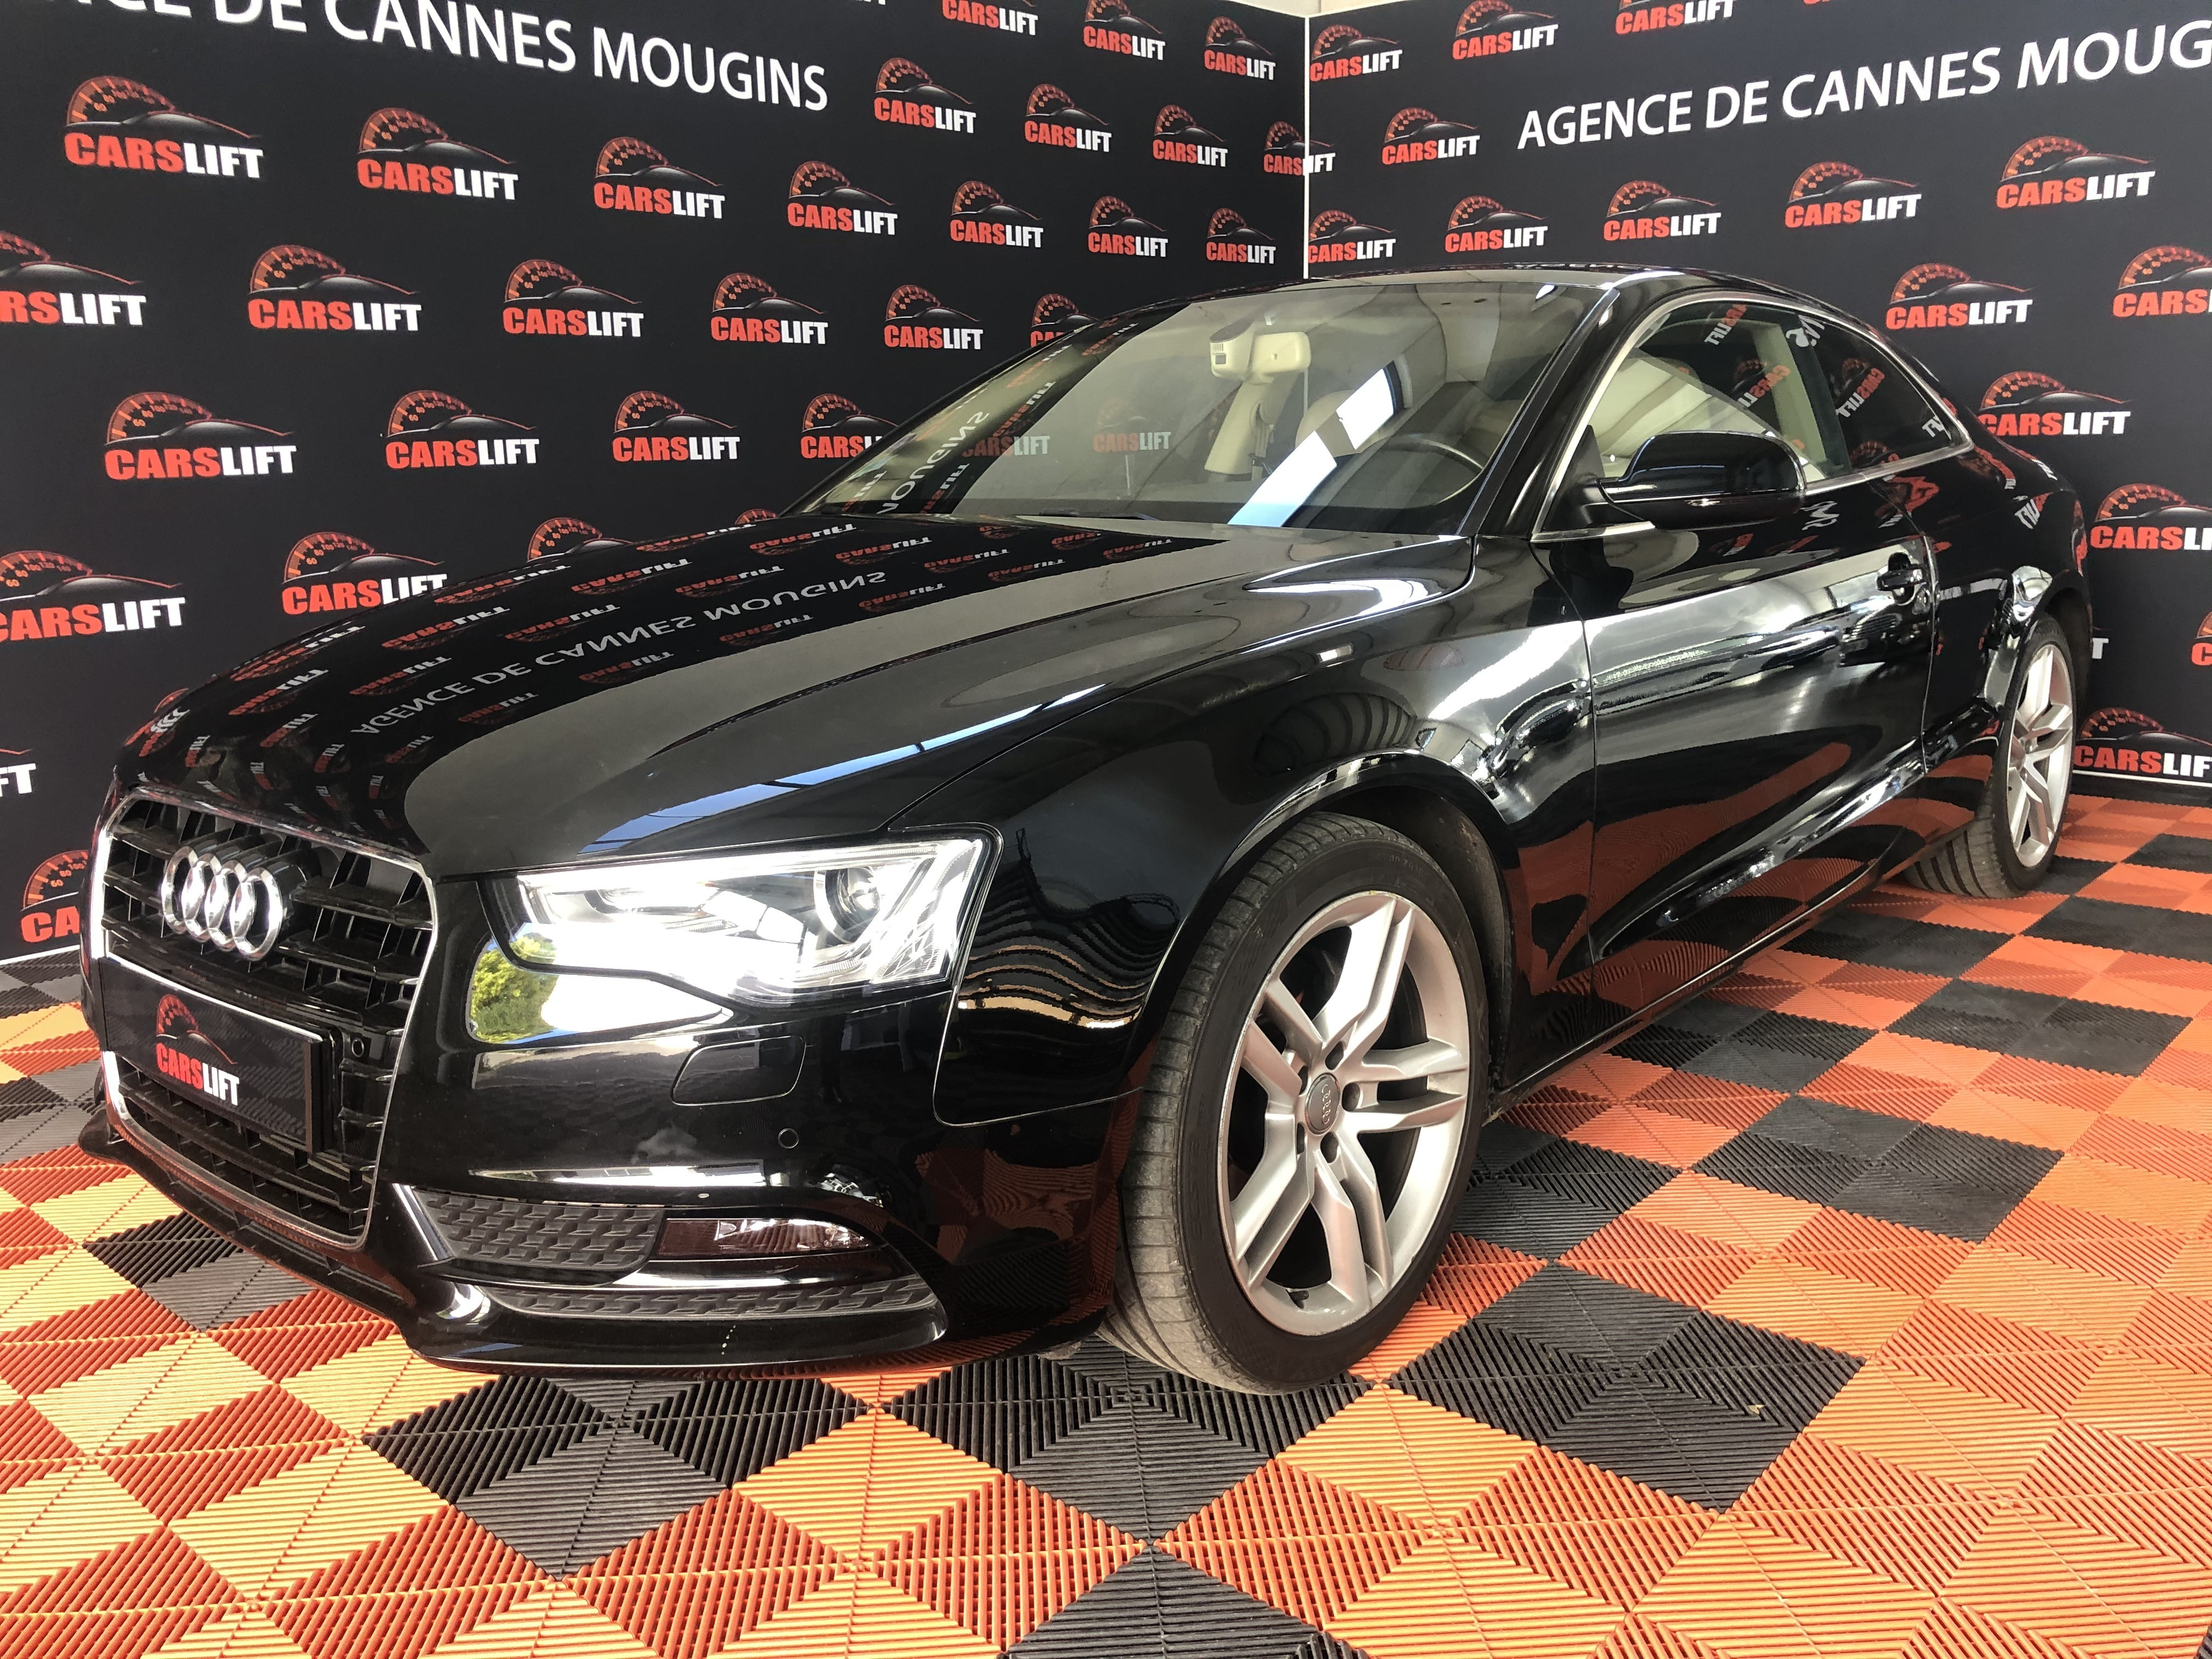 photo_Audi A5 Coupe 2.0 Tfsi 225 ch Multitronic Euro6 Ambition Luxe, Carslift